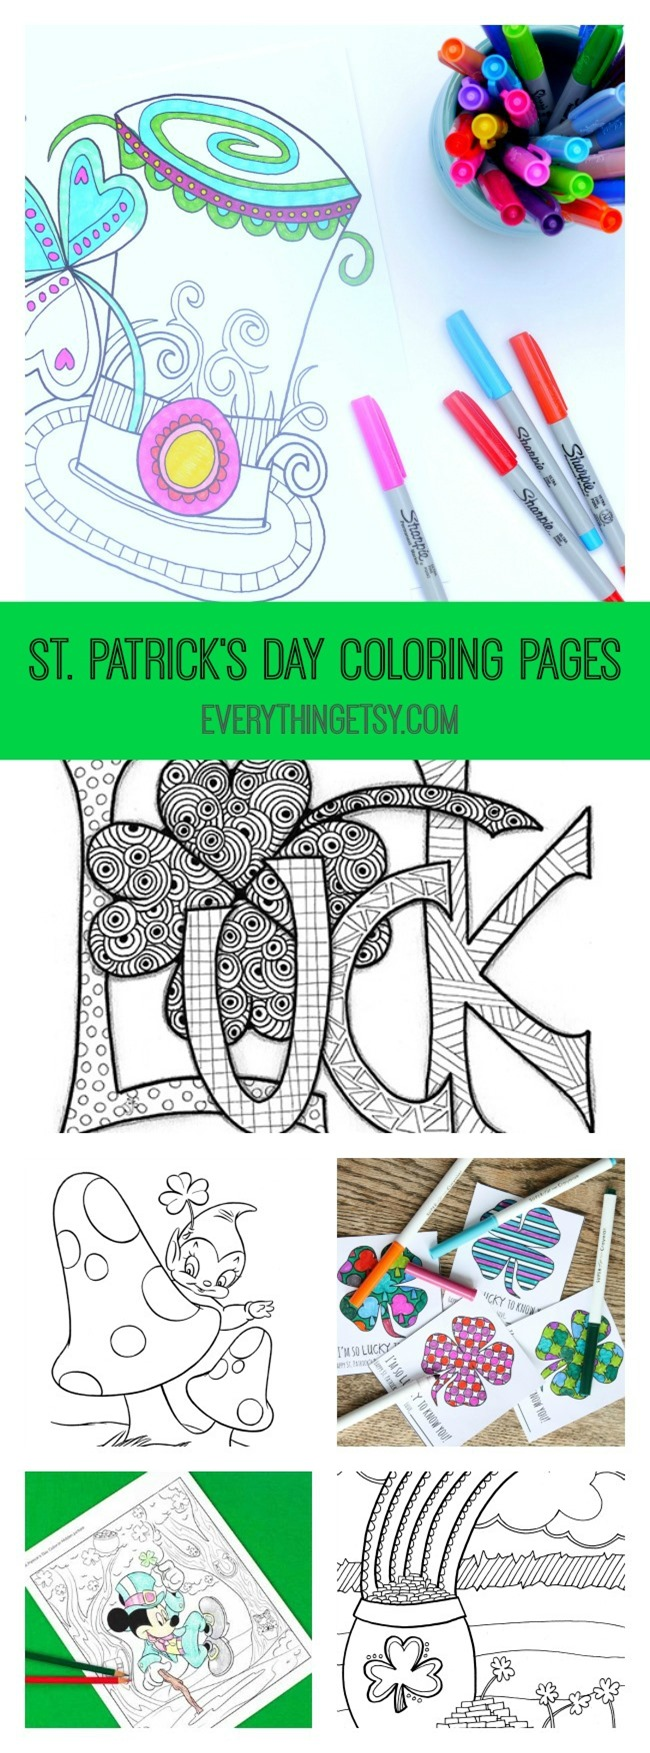 12 St. Patrick's Day Printable Coloring Pages for Adults & Kids at EverythingEtsy